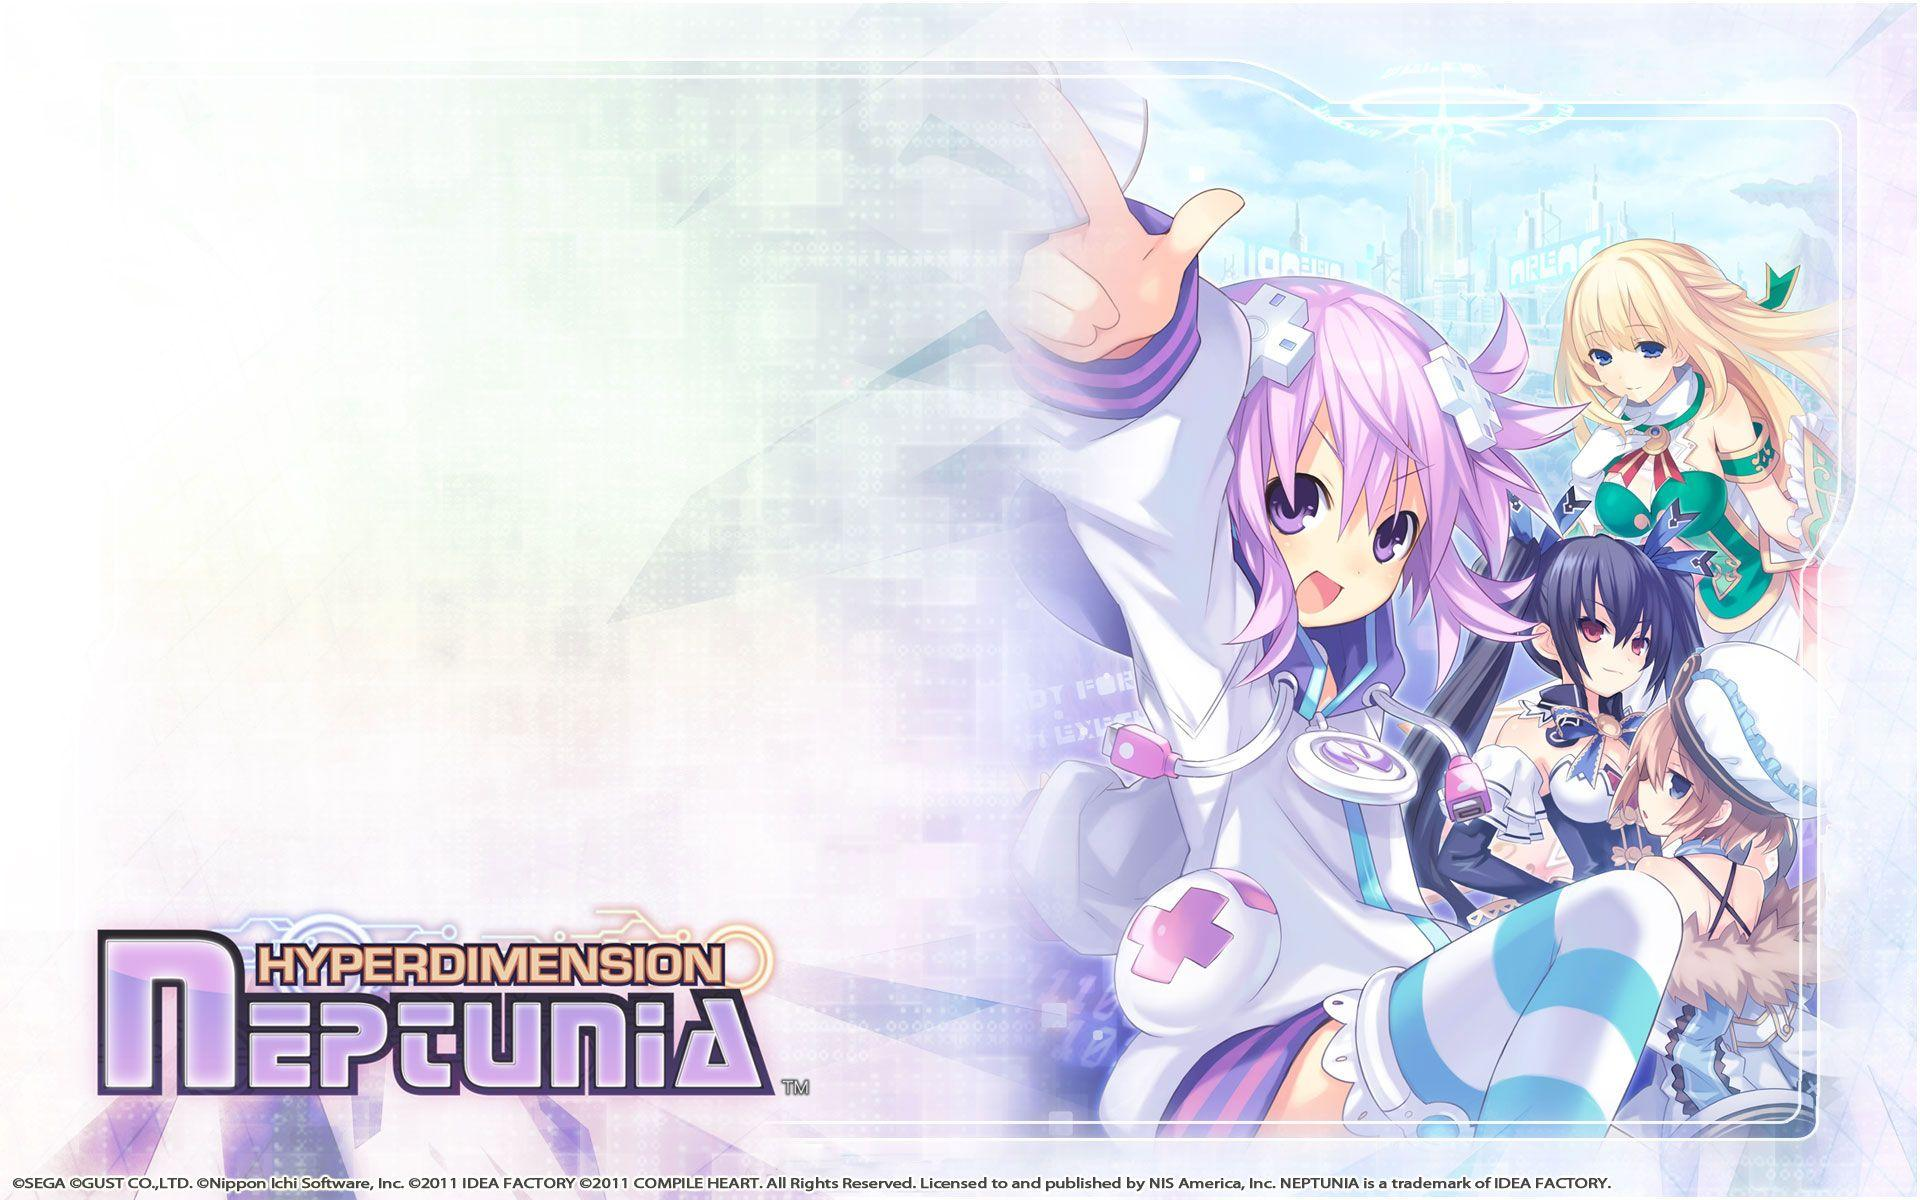 Hyperdimension Neptunia Wallpapers Wallpaper Cave